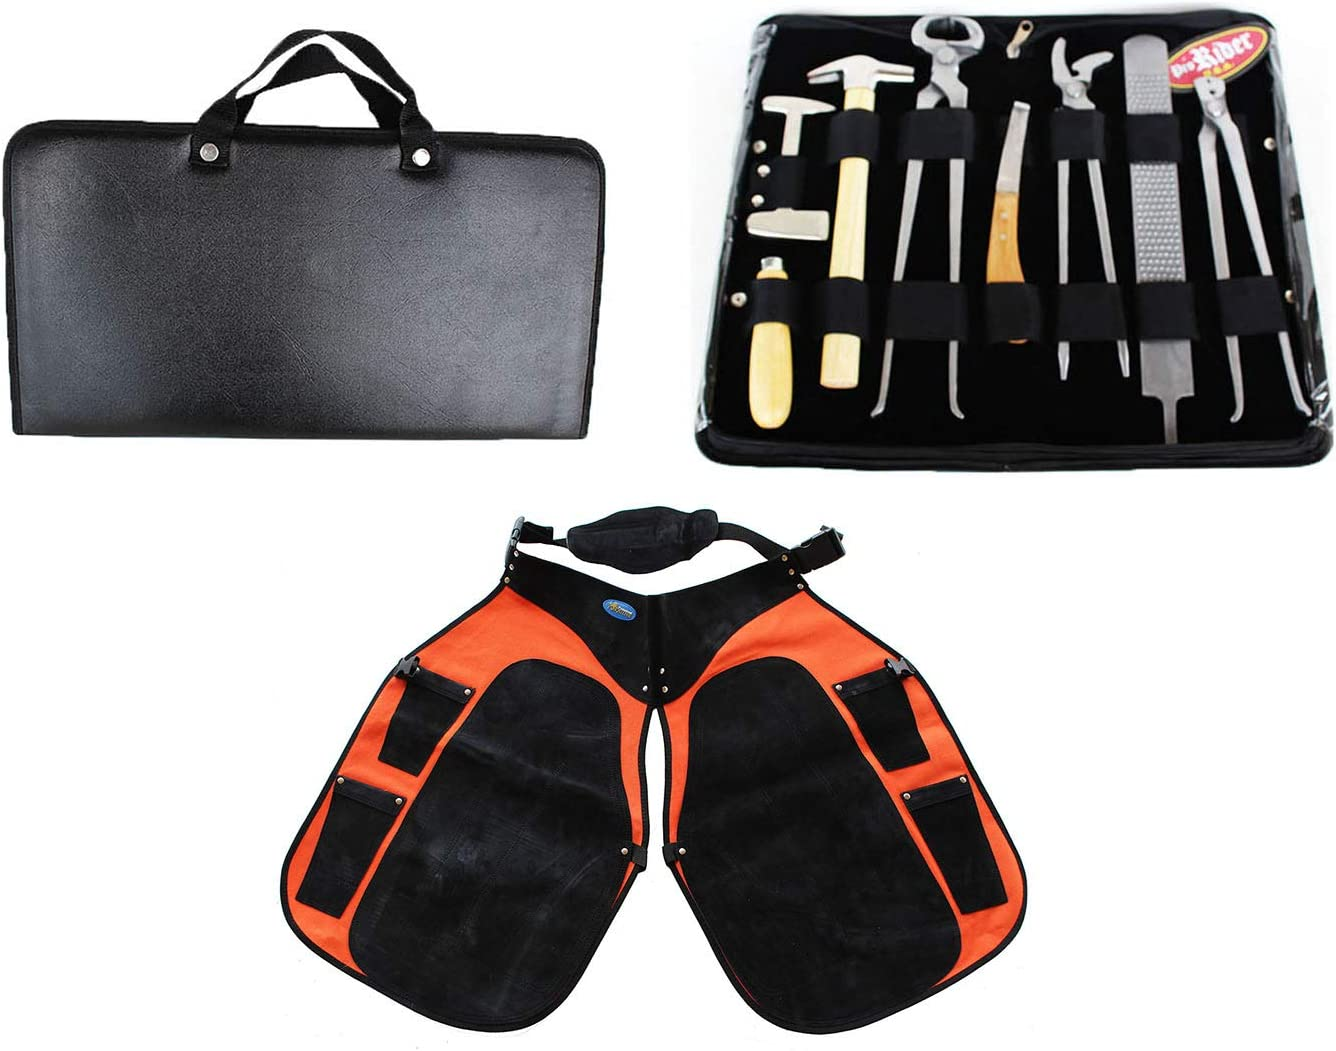 CHALLENGER [Alternative dealer] 8 Challenge the lowest price of Japan Piece Horse Farrier Hoof Kit Carry Ba Grooming Tool